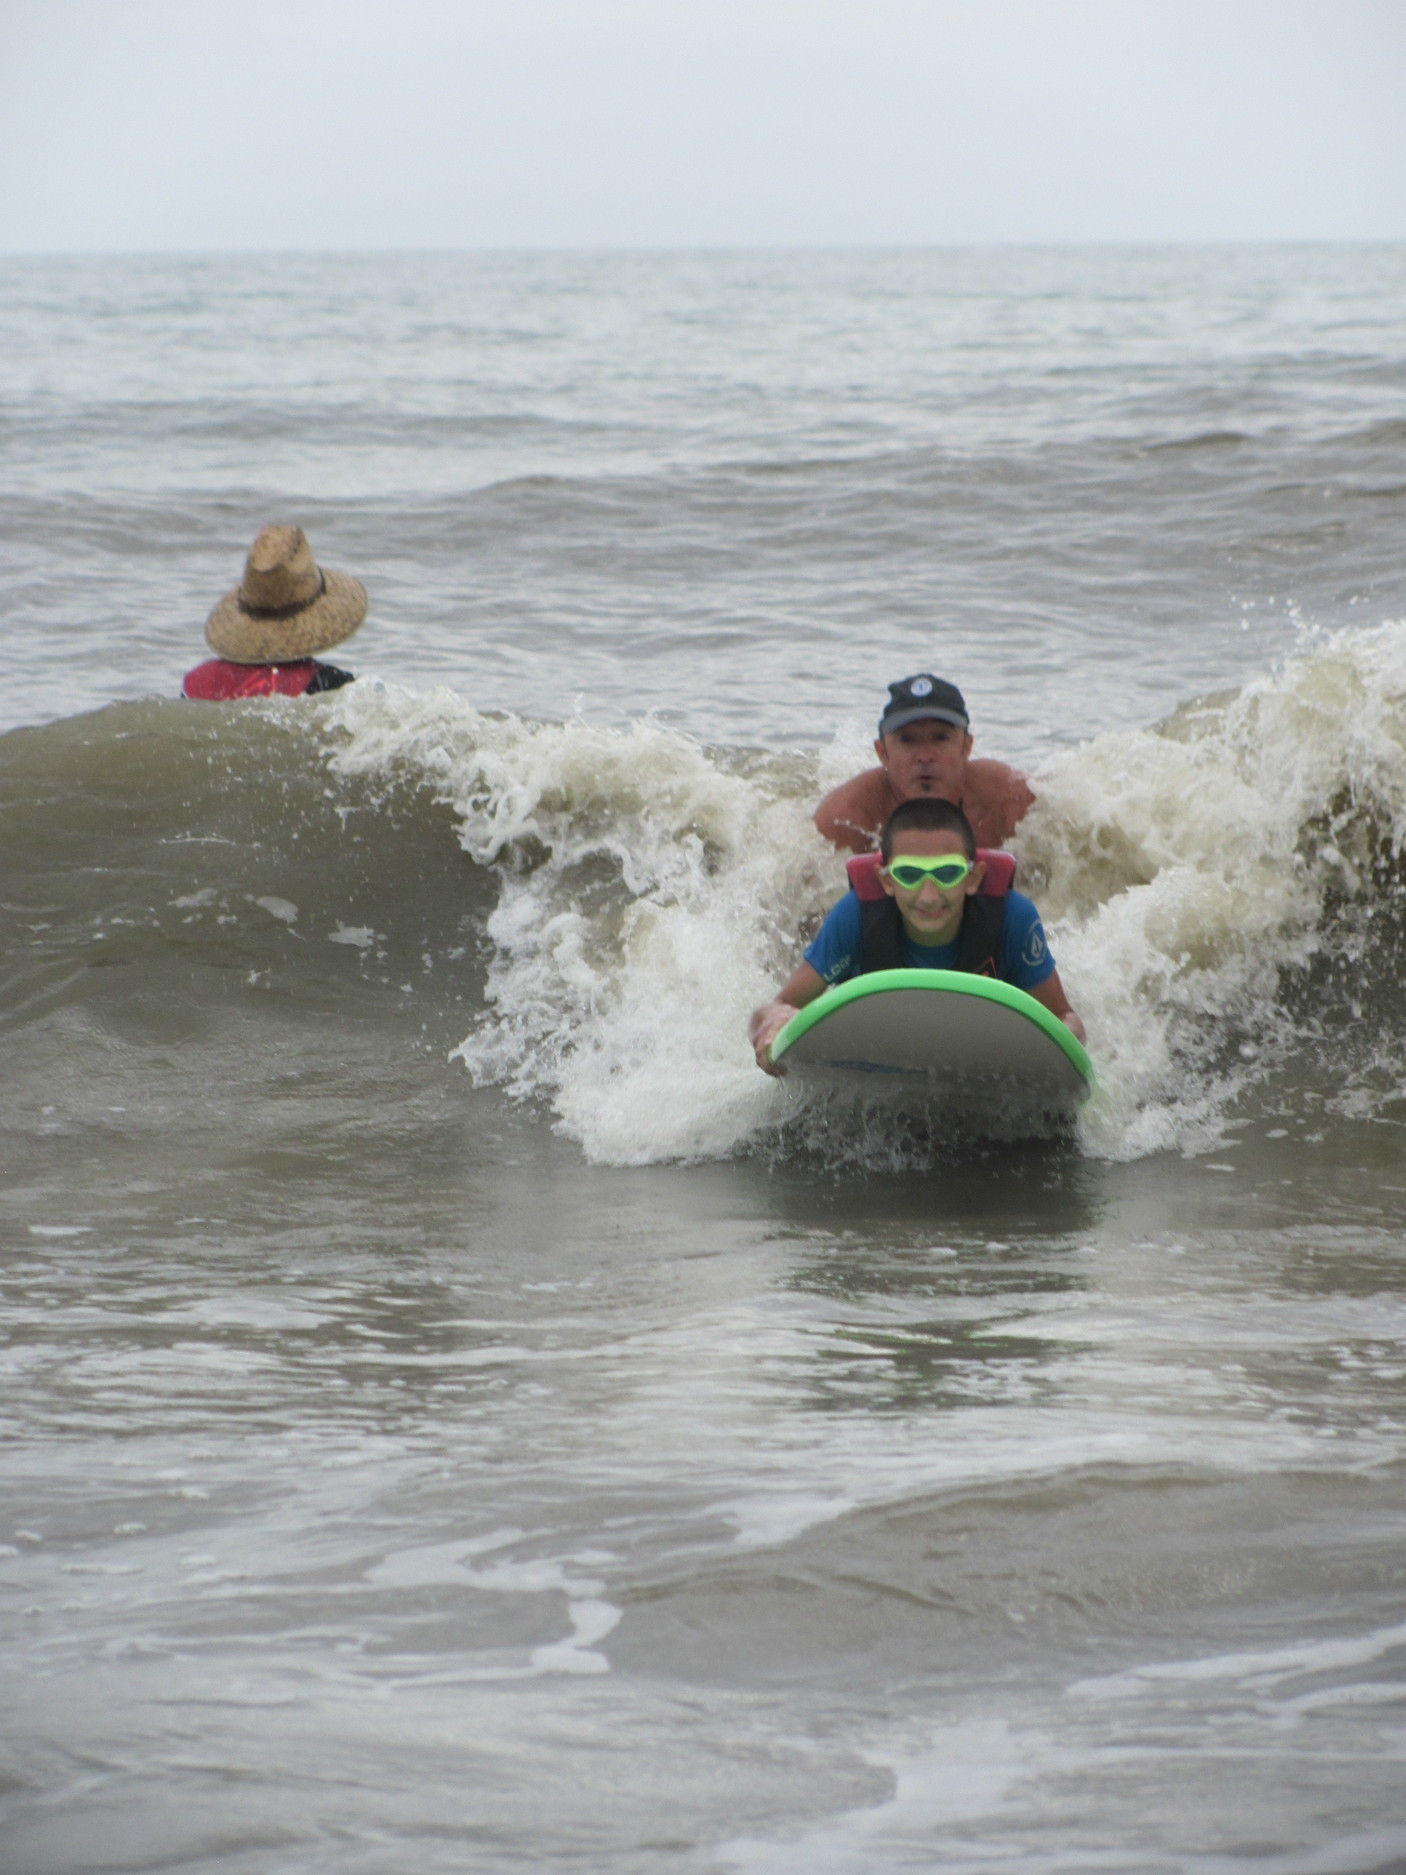 A camper smiles as he rides a wave toward the shore.